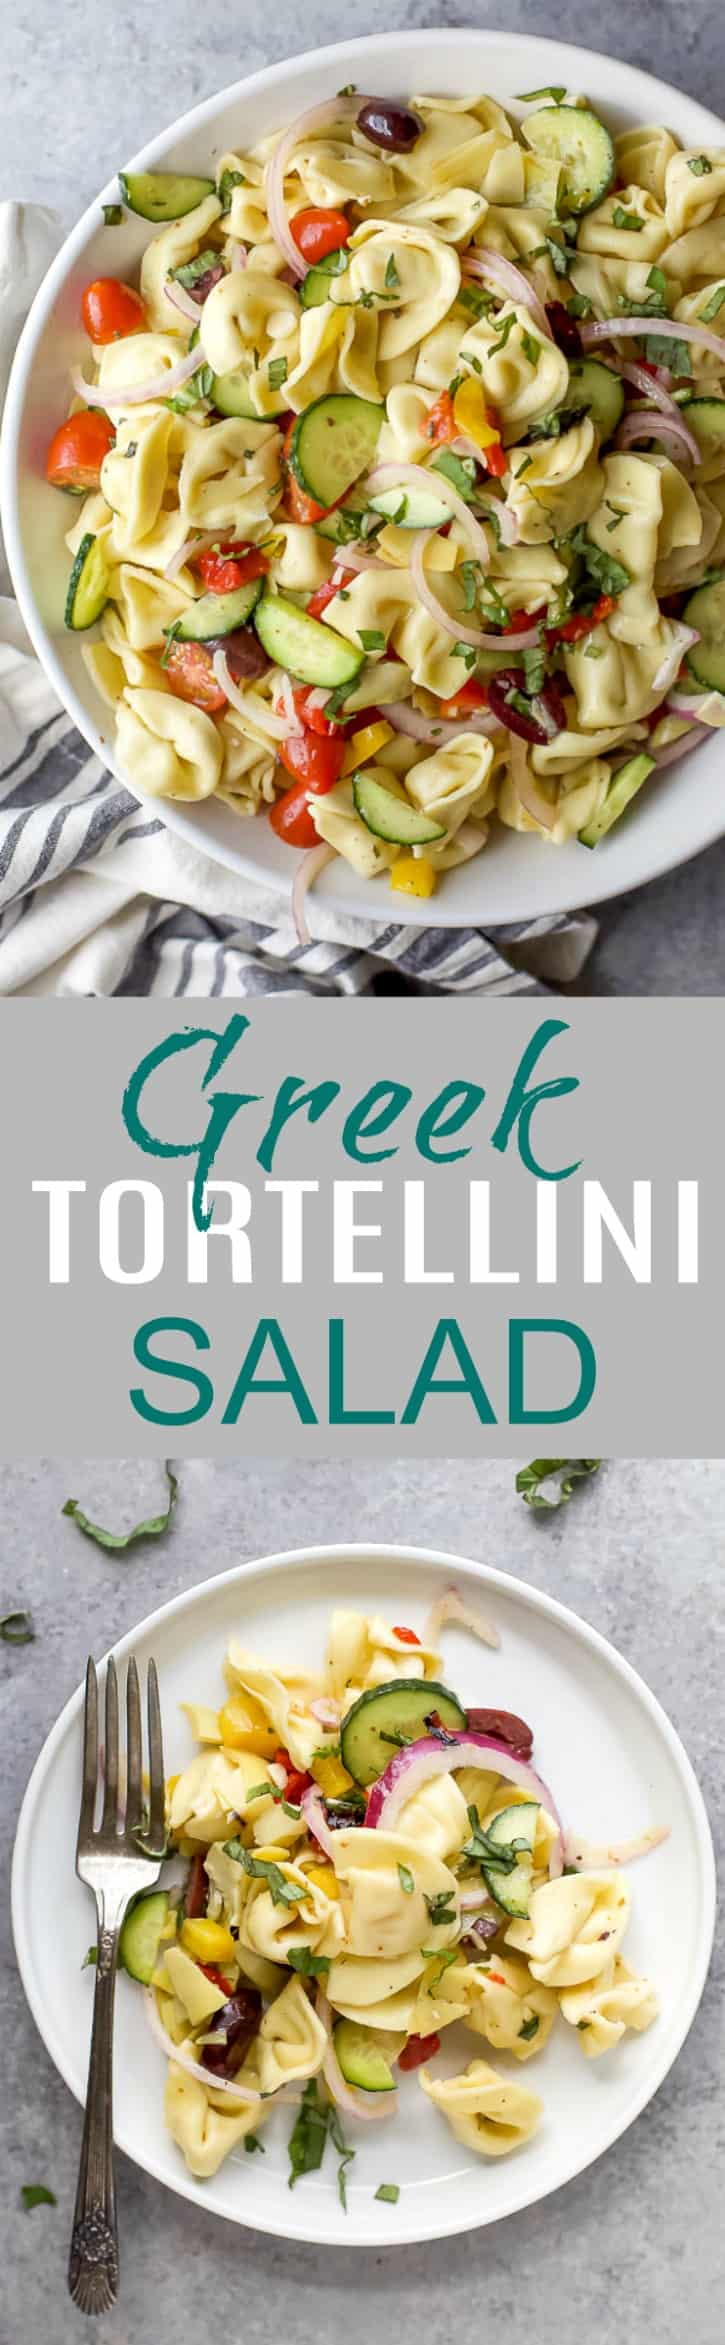 Easy 30 Minute Greek Tortellini Salad tossed with mediterraneanveggies and a homemade greek vinaigrette for a lighter healthier taste. This Tortellini Pasta Salad is guaranteed to be the star at your summer BBQ's.